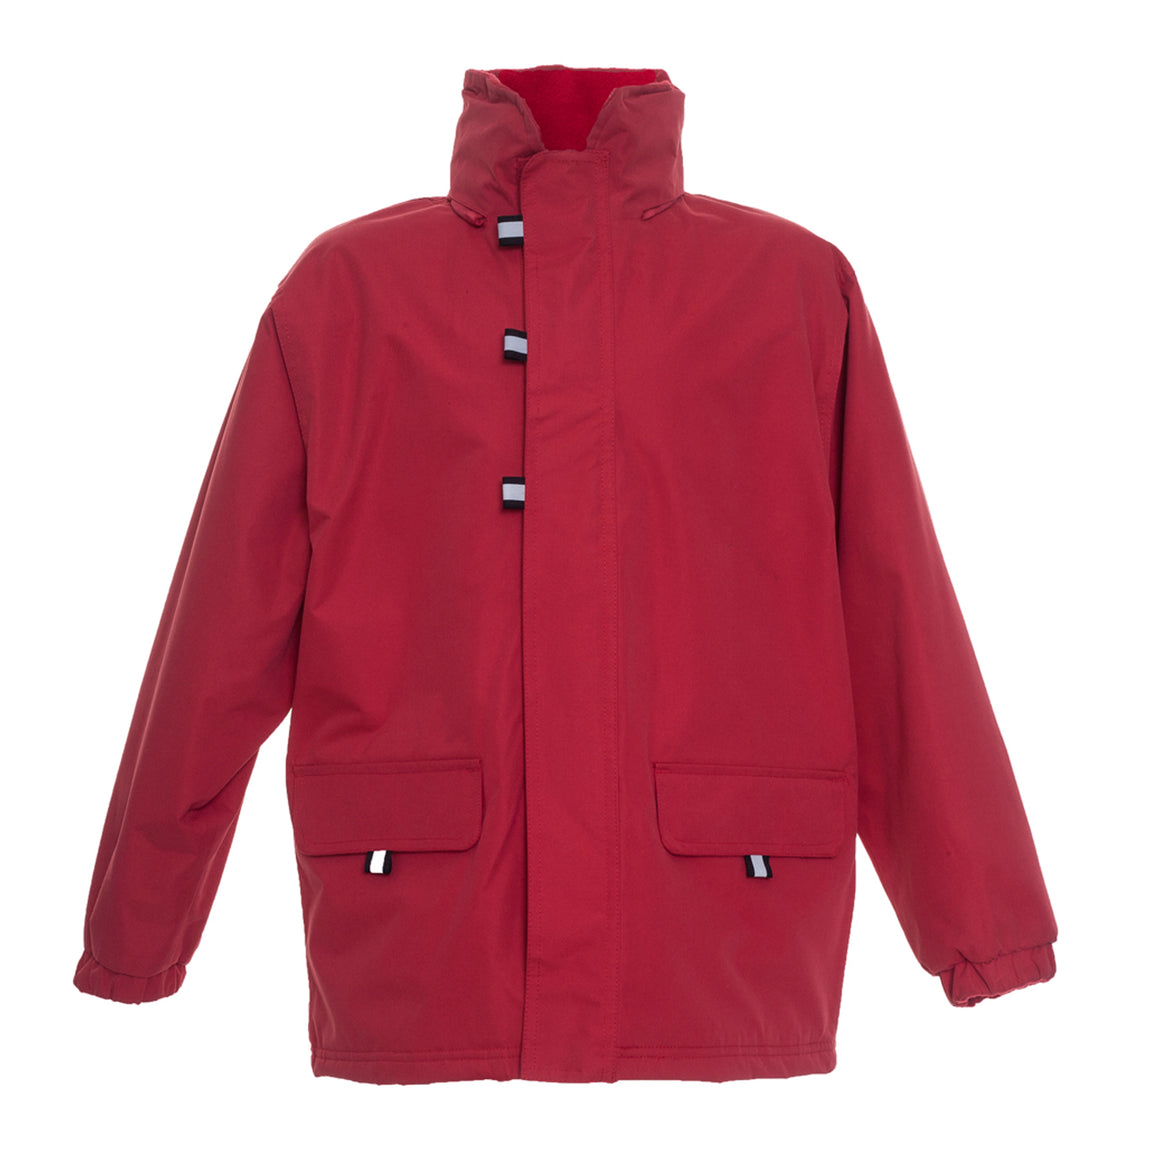 R150 Coat Red for Kids in Red